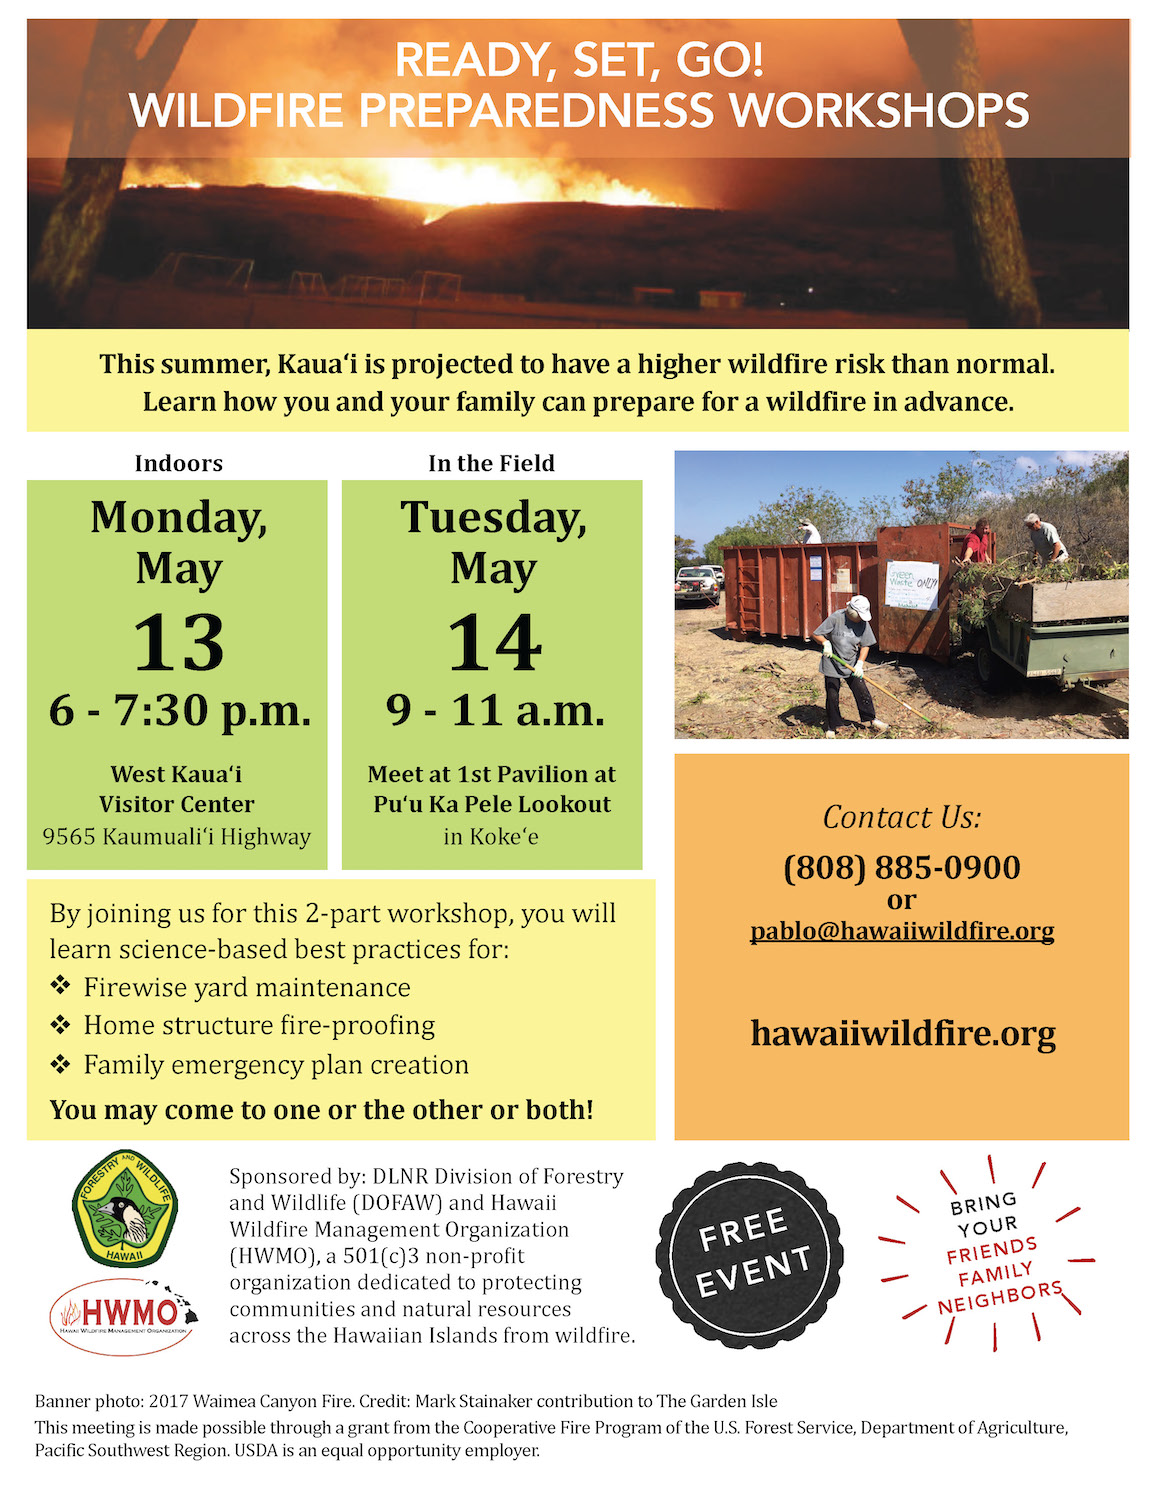 Kauai ReadySetGo! Wildfire Preparedness Workshop (Part 1